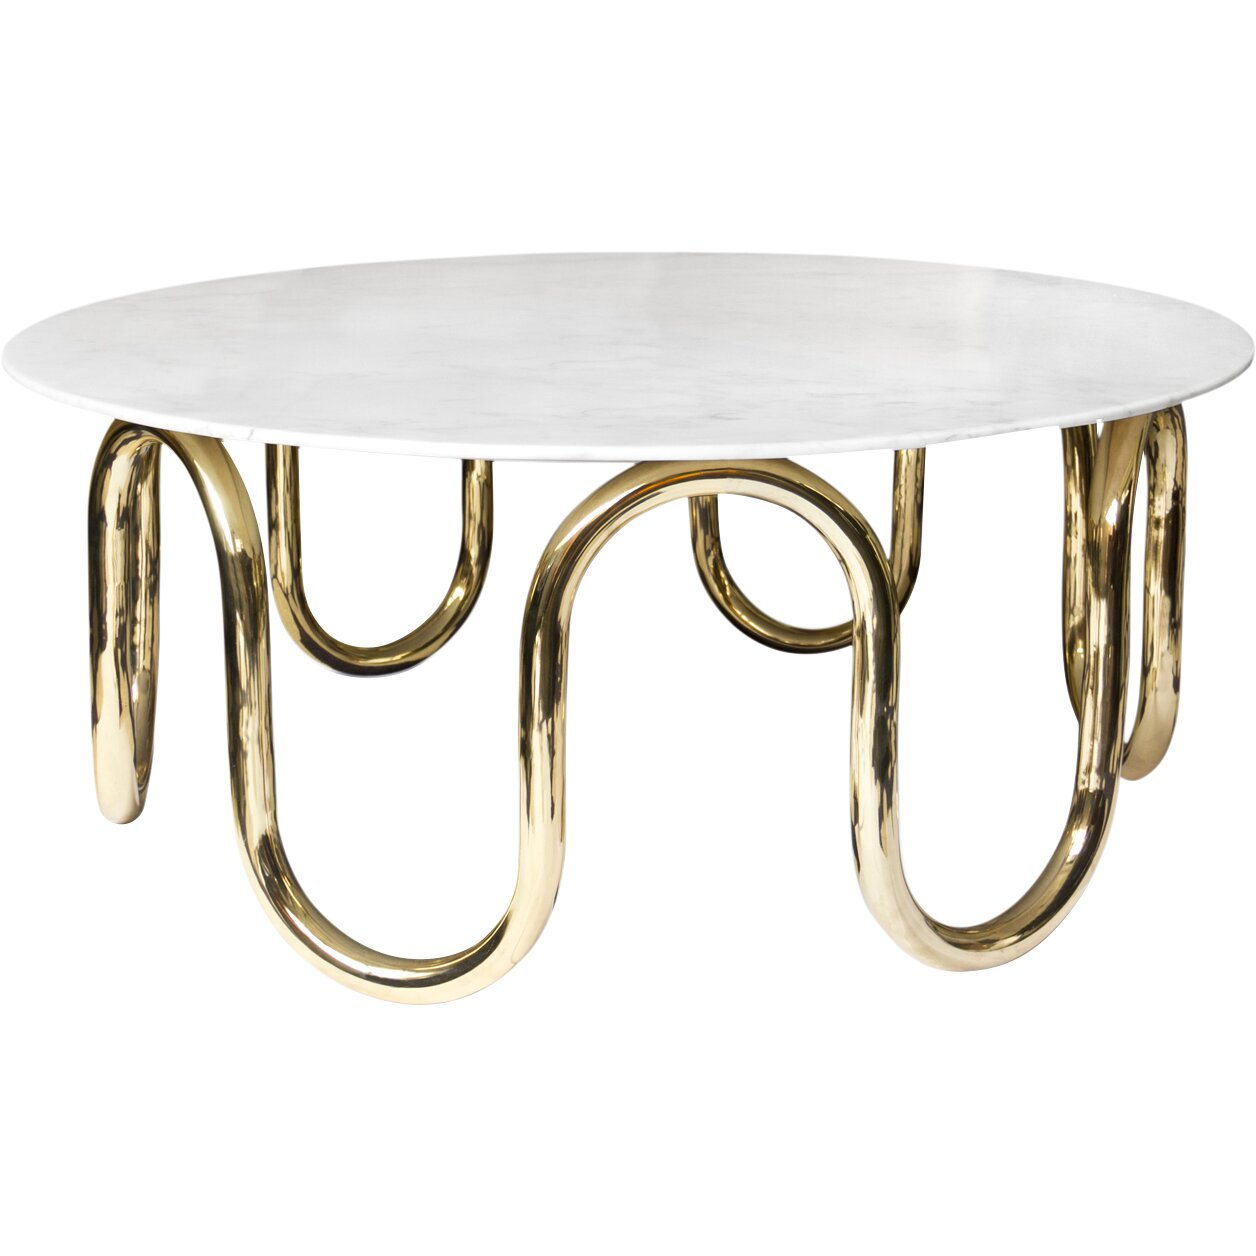 Jonathan adler scalinatella coffee table reviews wayfair Jonathan adler coffee table